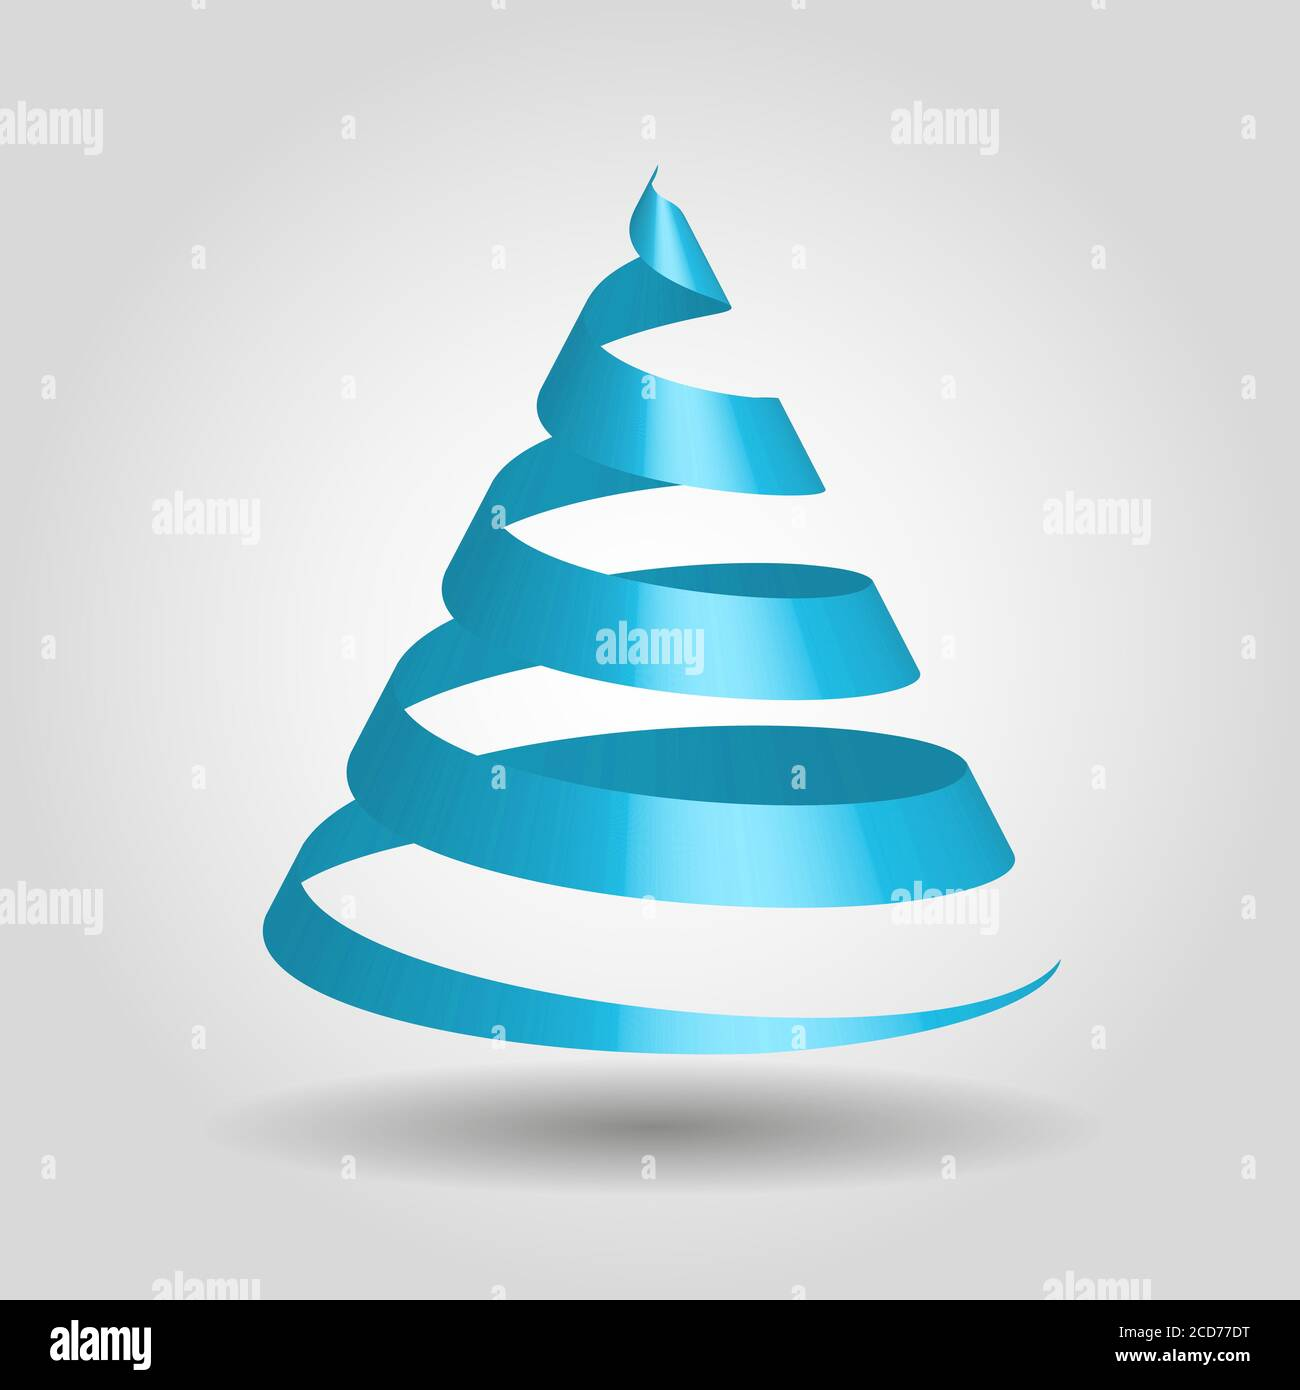 Simple Blue Ribbon In A Shape Of Christmas Tree Modern And Elegant Merry Christmas Theme 3d Vector Illustration With Dropped Shadow And Gradient Background Stock Vector Image Art Alamy